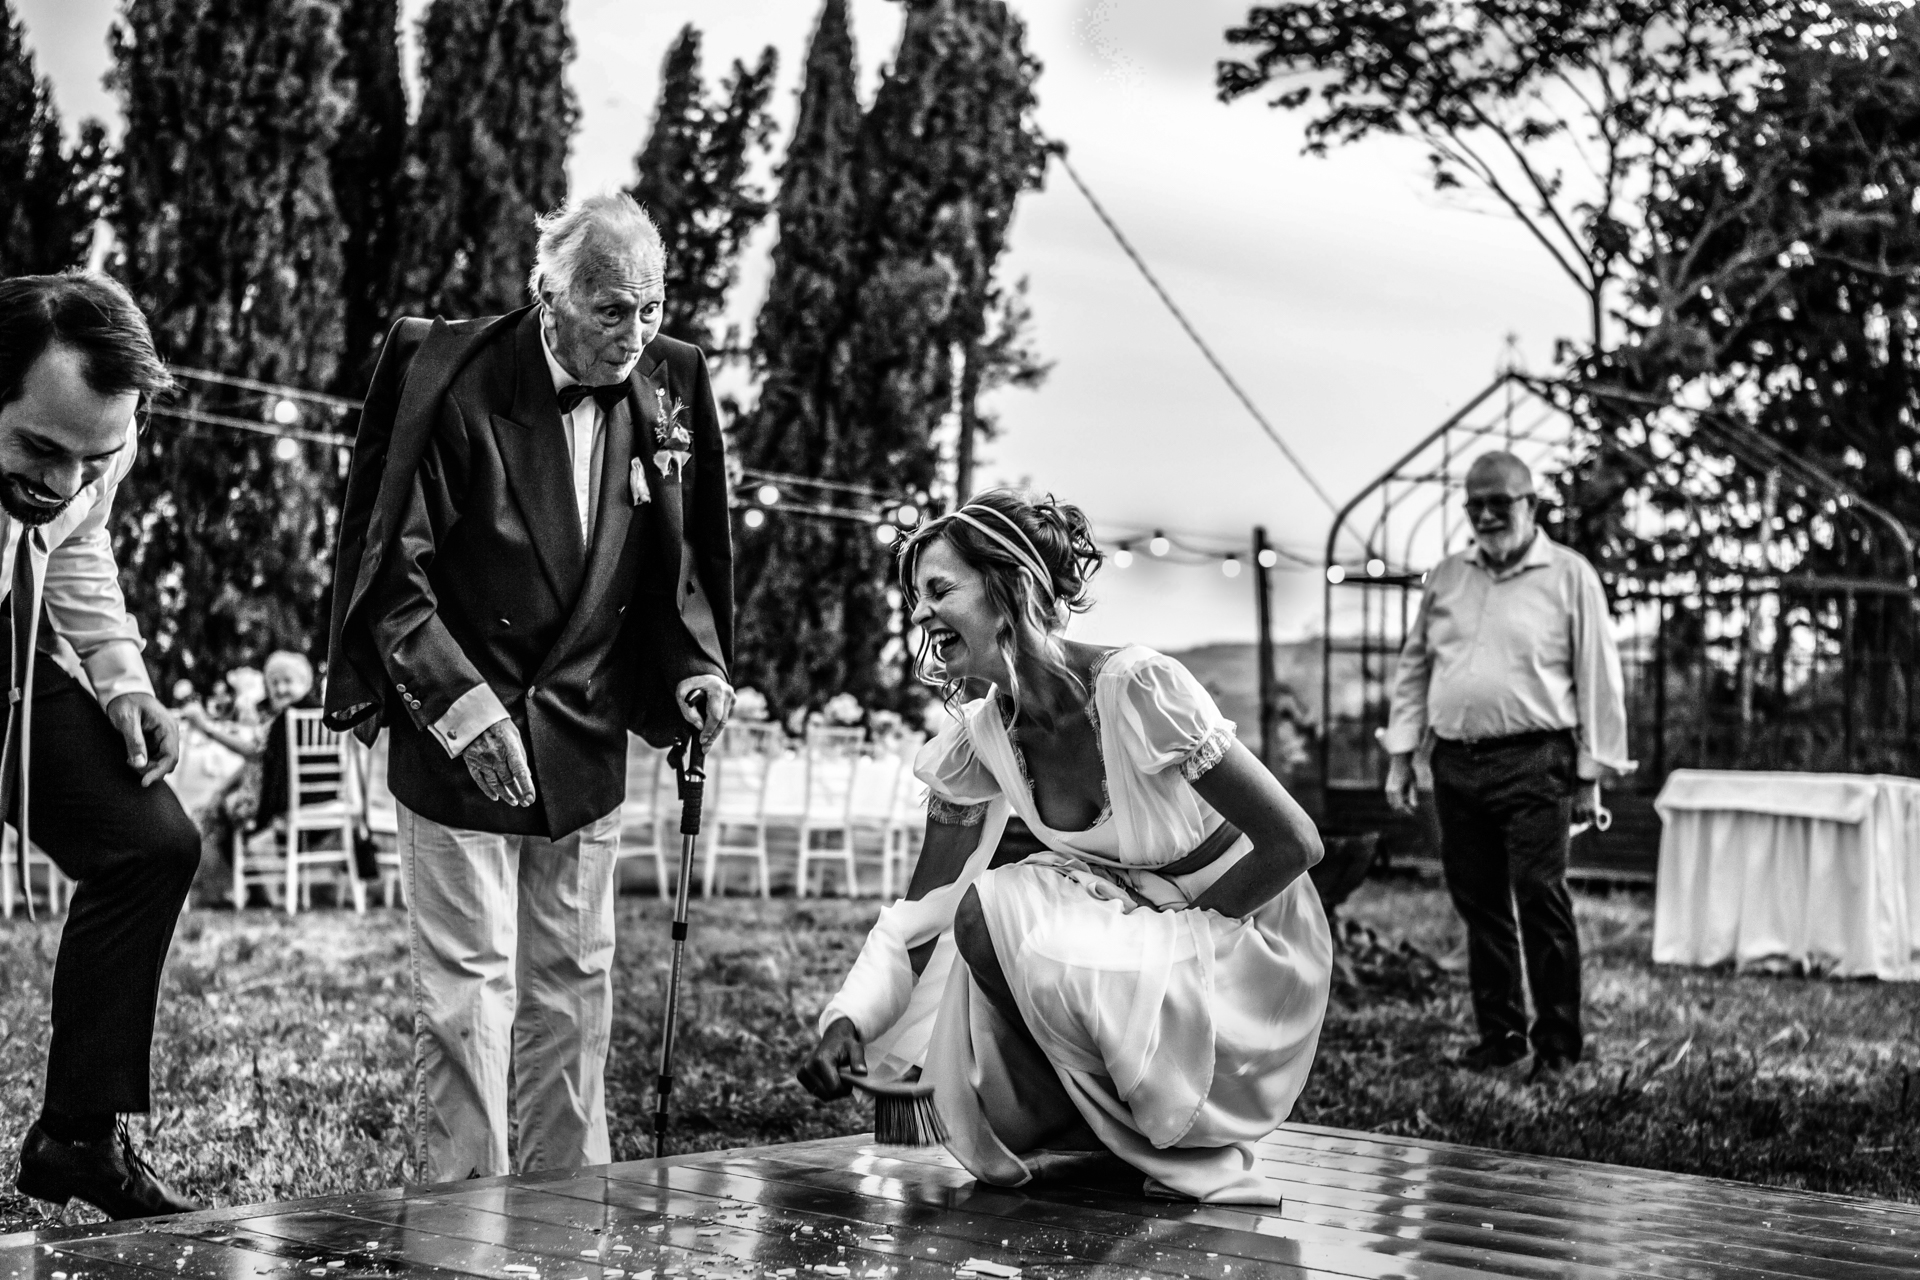 San Demetrio Weddings, Cesena, Italy | The bride laughs during the Slovakian tradition of the breaking of the plate